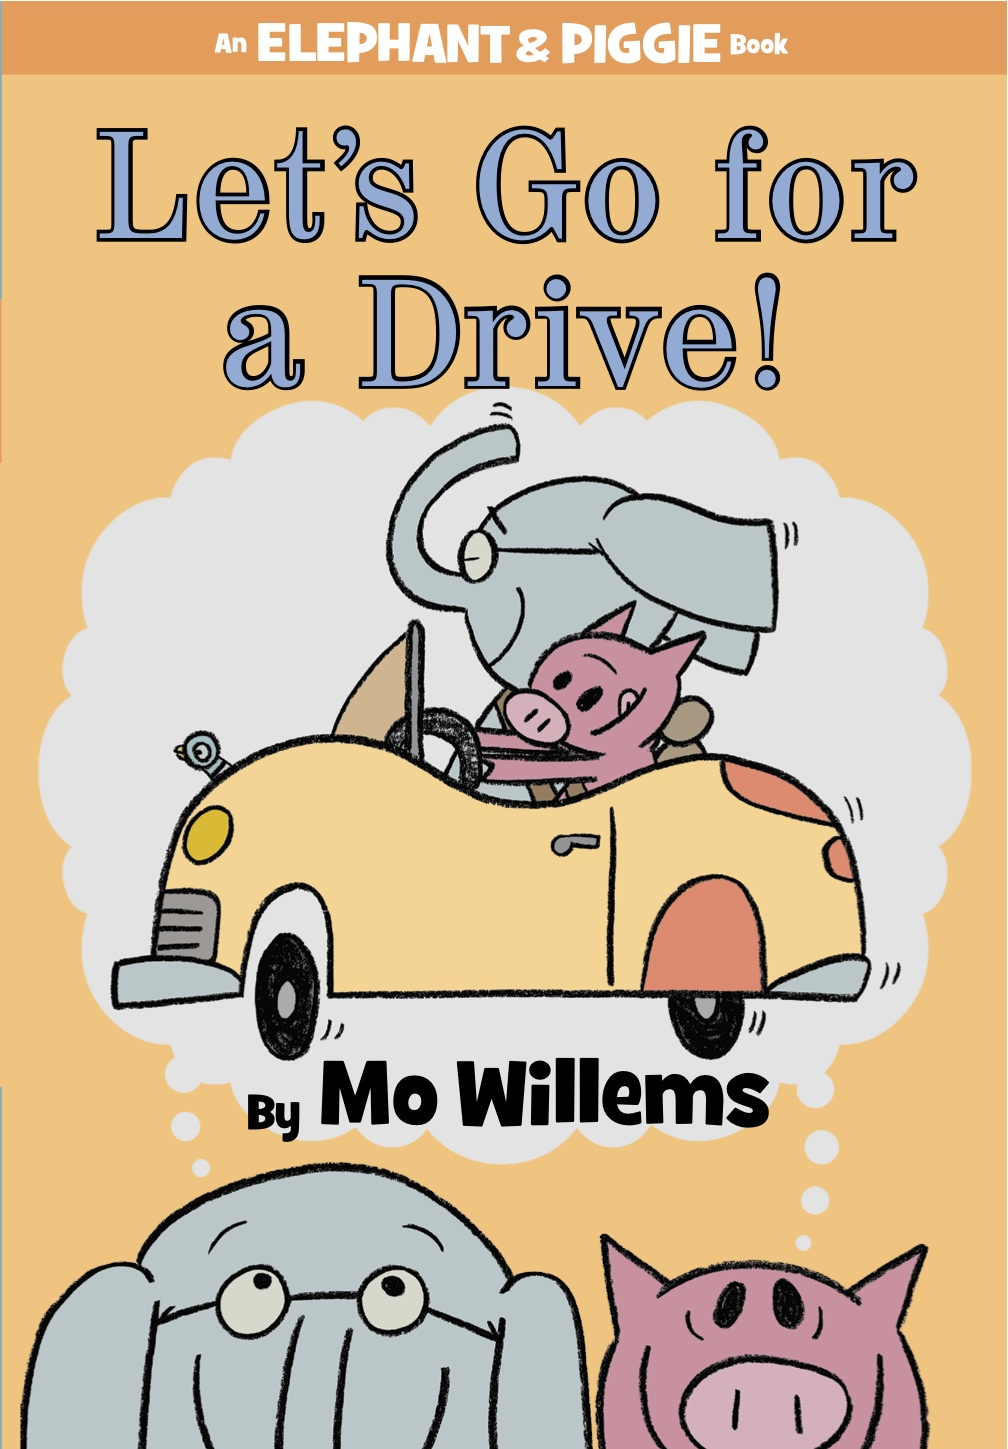 Mo Willems Doodles: July 2013.